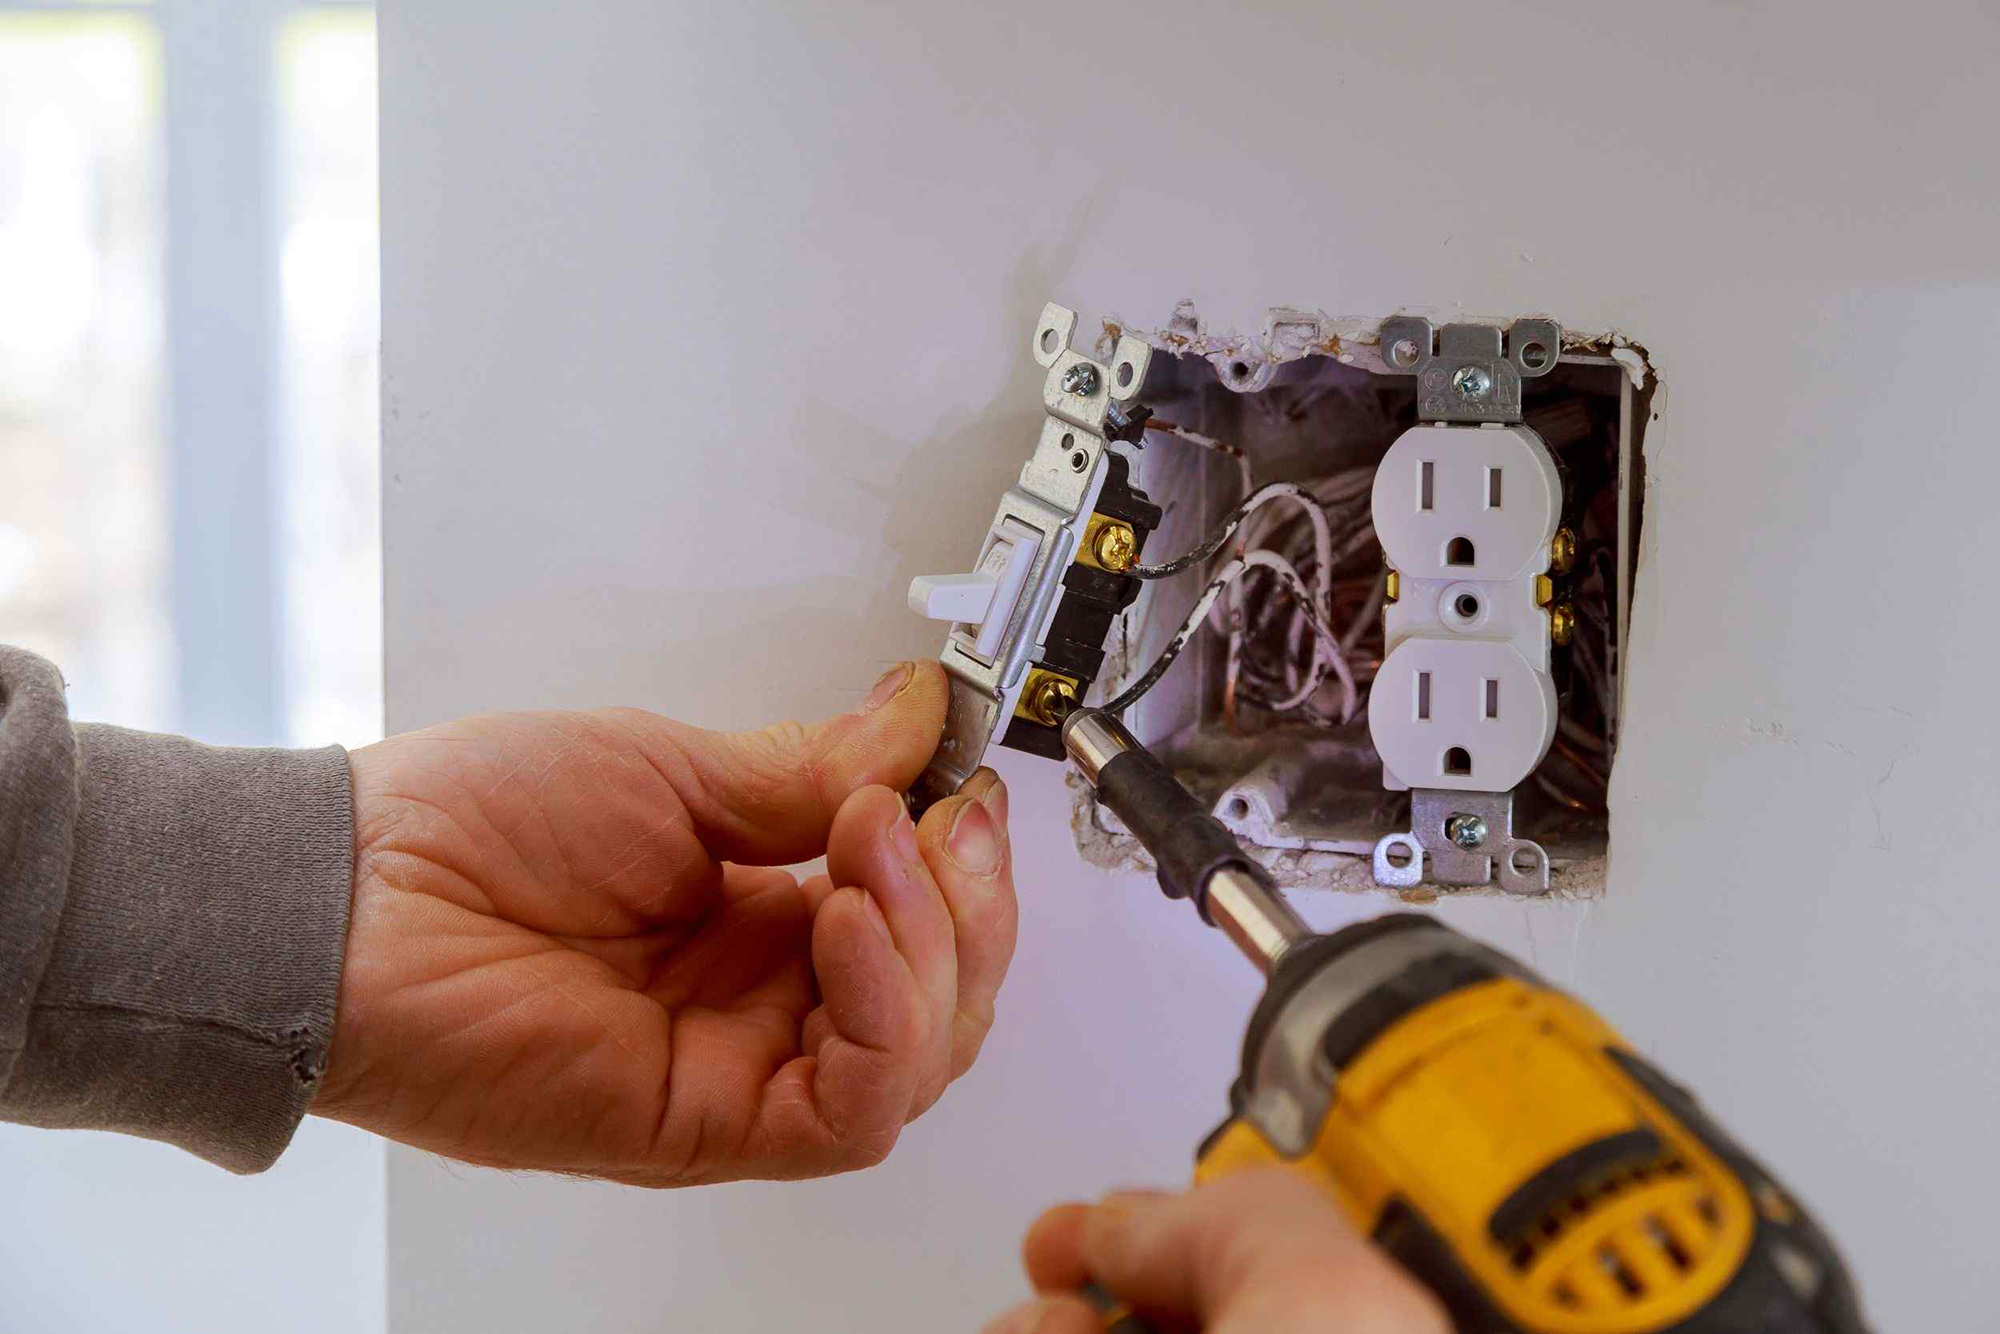 Electricians in Herndon